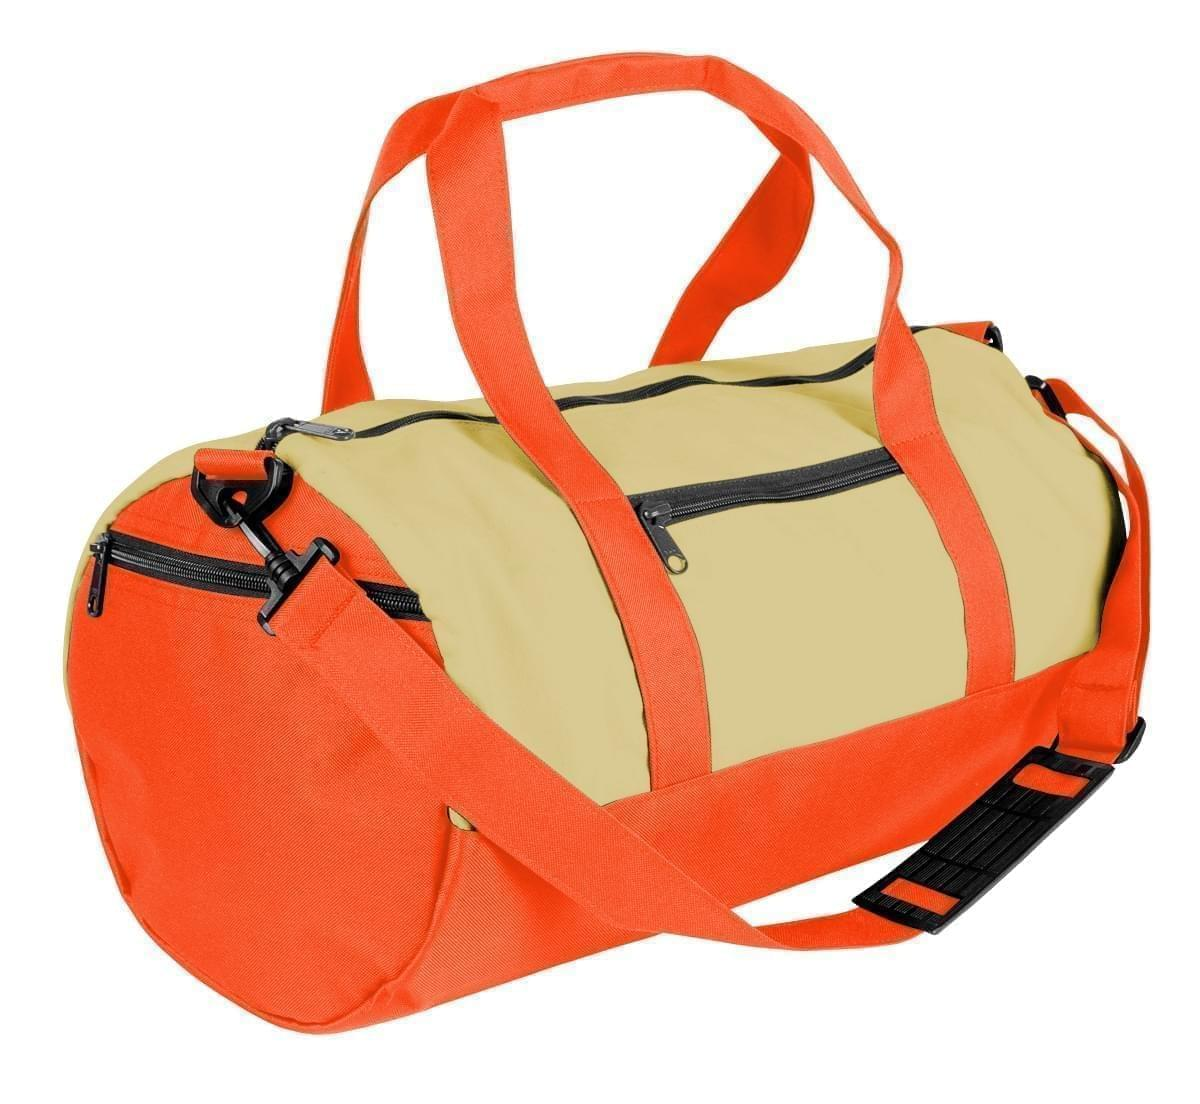 USA Made Heavy Canvas Athletic Barrel Bags, Natural-Orange, PMLXZ2AAV0